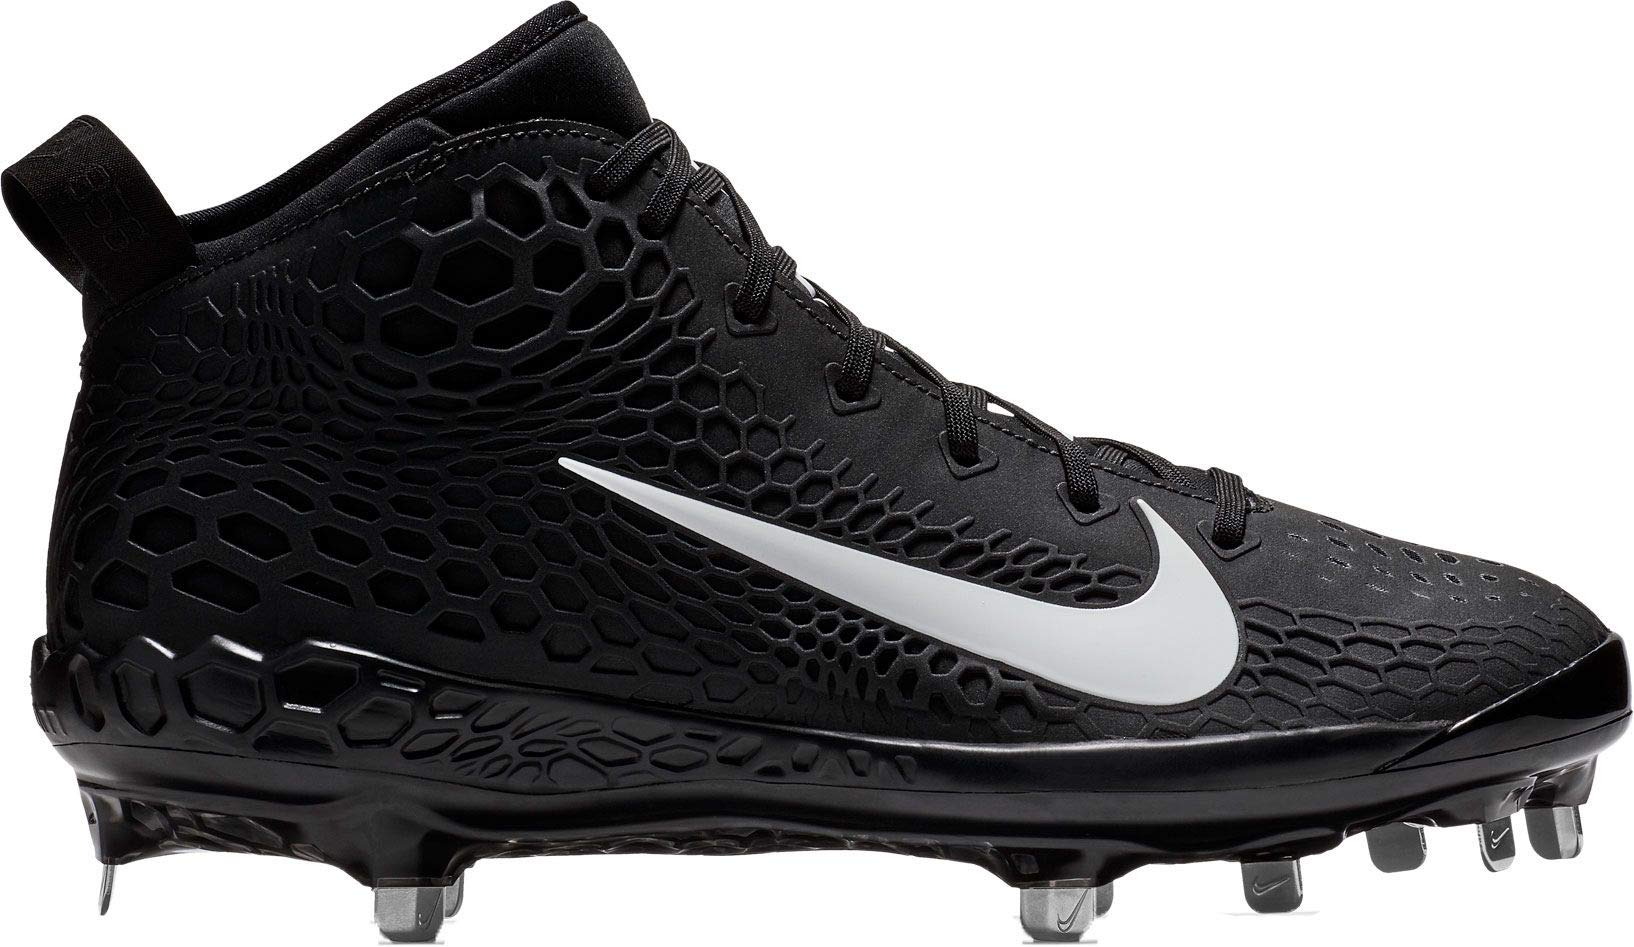 NIKE Men's Force Zoom Trout 5 Metal Baseball Cleats (Black/White, 9.5 M US)